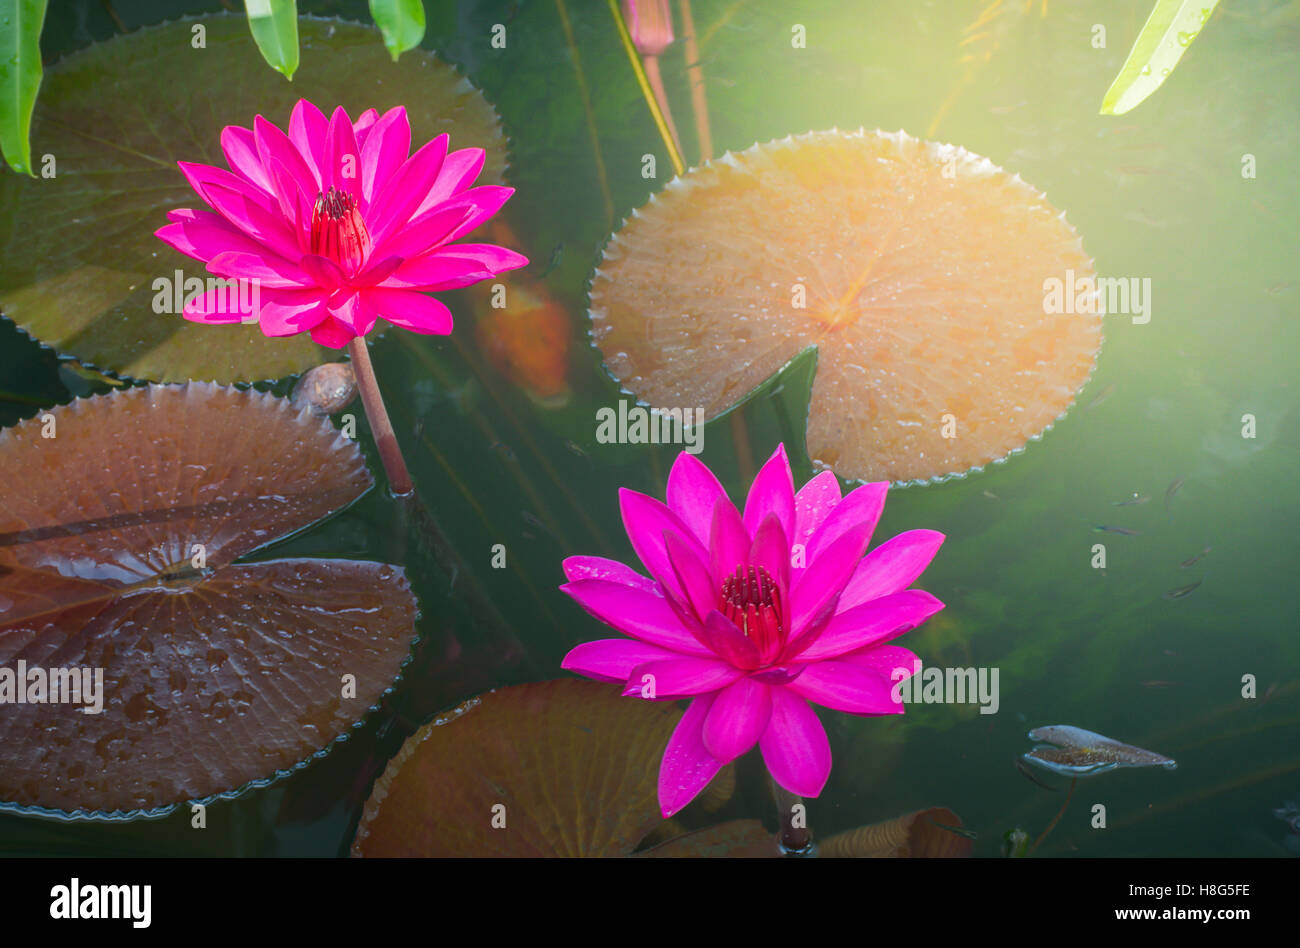 Water lotus flower morning stock photos water lotus flower morning close up photo of bright pink colour twin lotus blossom or water lily flower in pond izmirmasajfo